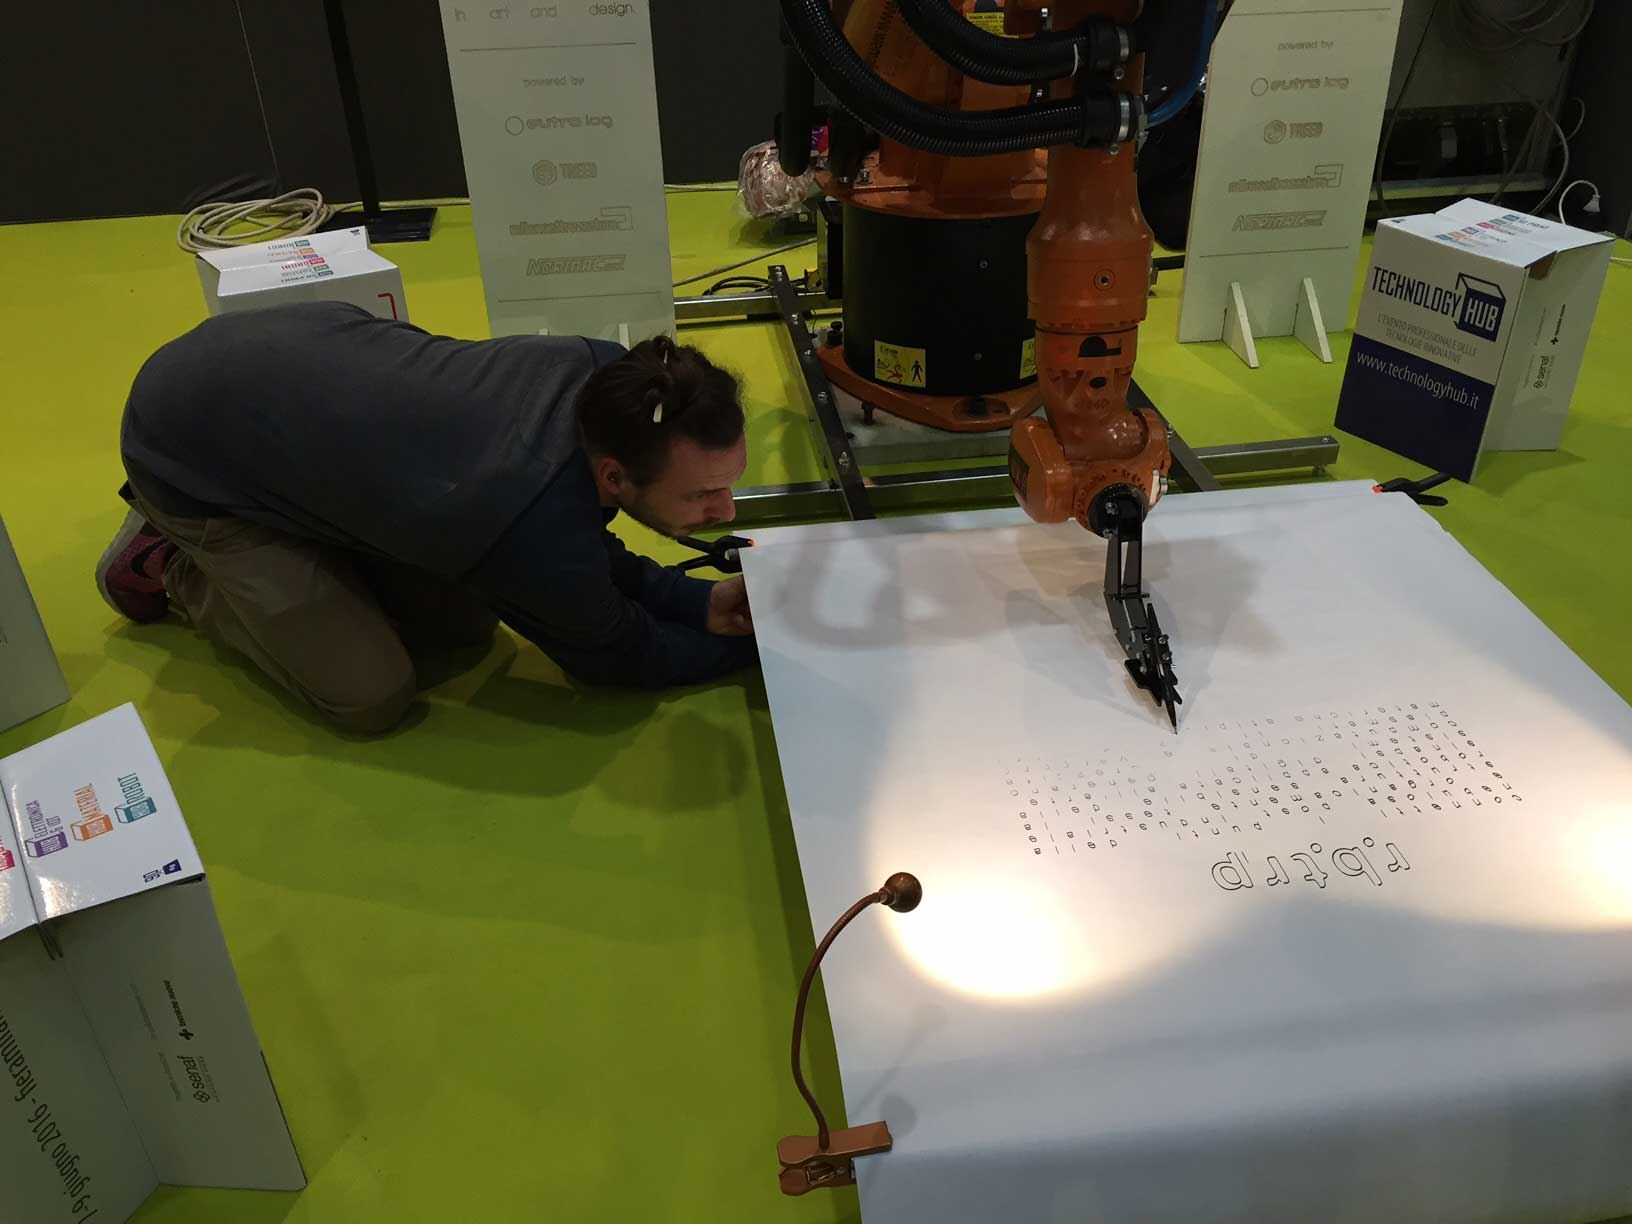 """Robotrip project at """"Technology Hub"""" fair in Milan"""